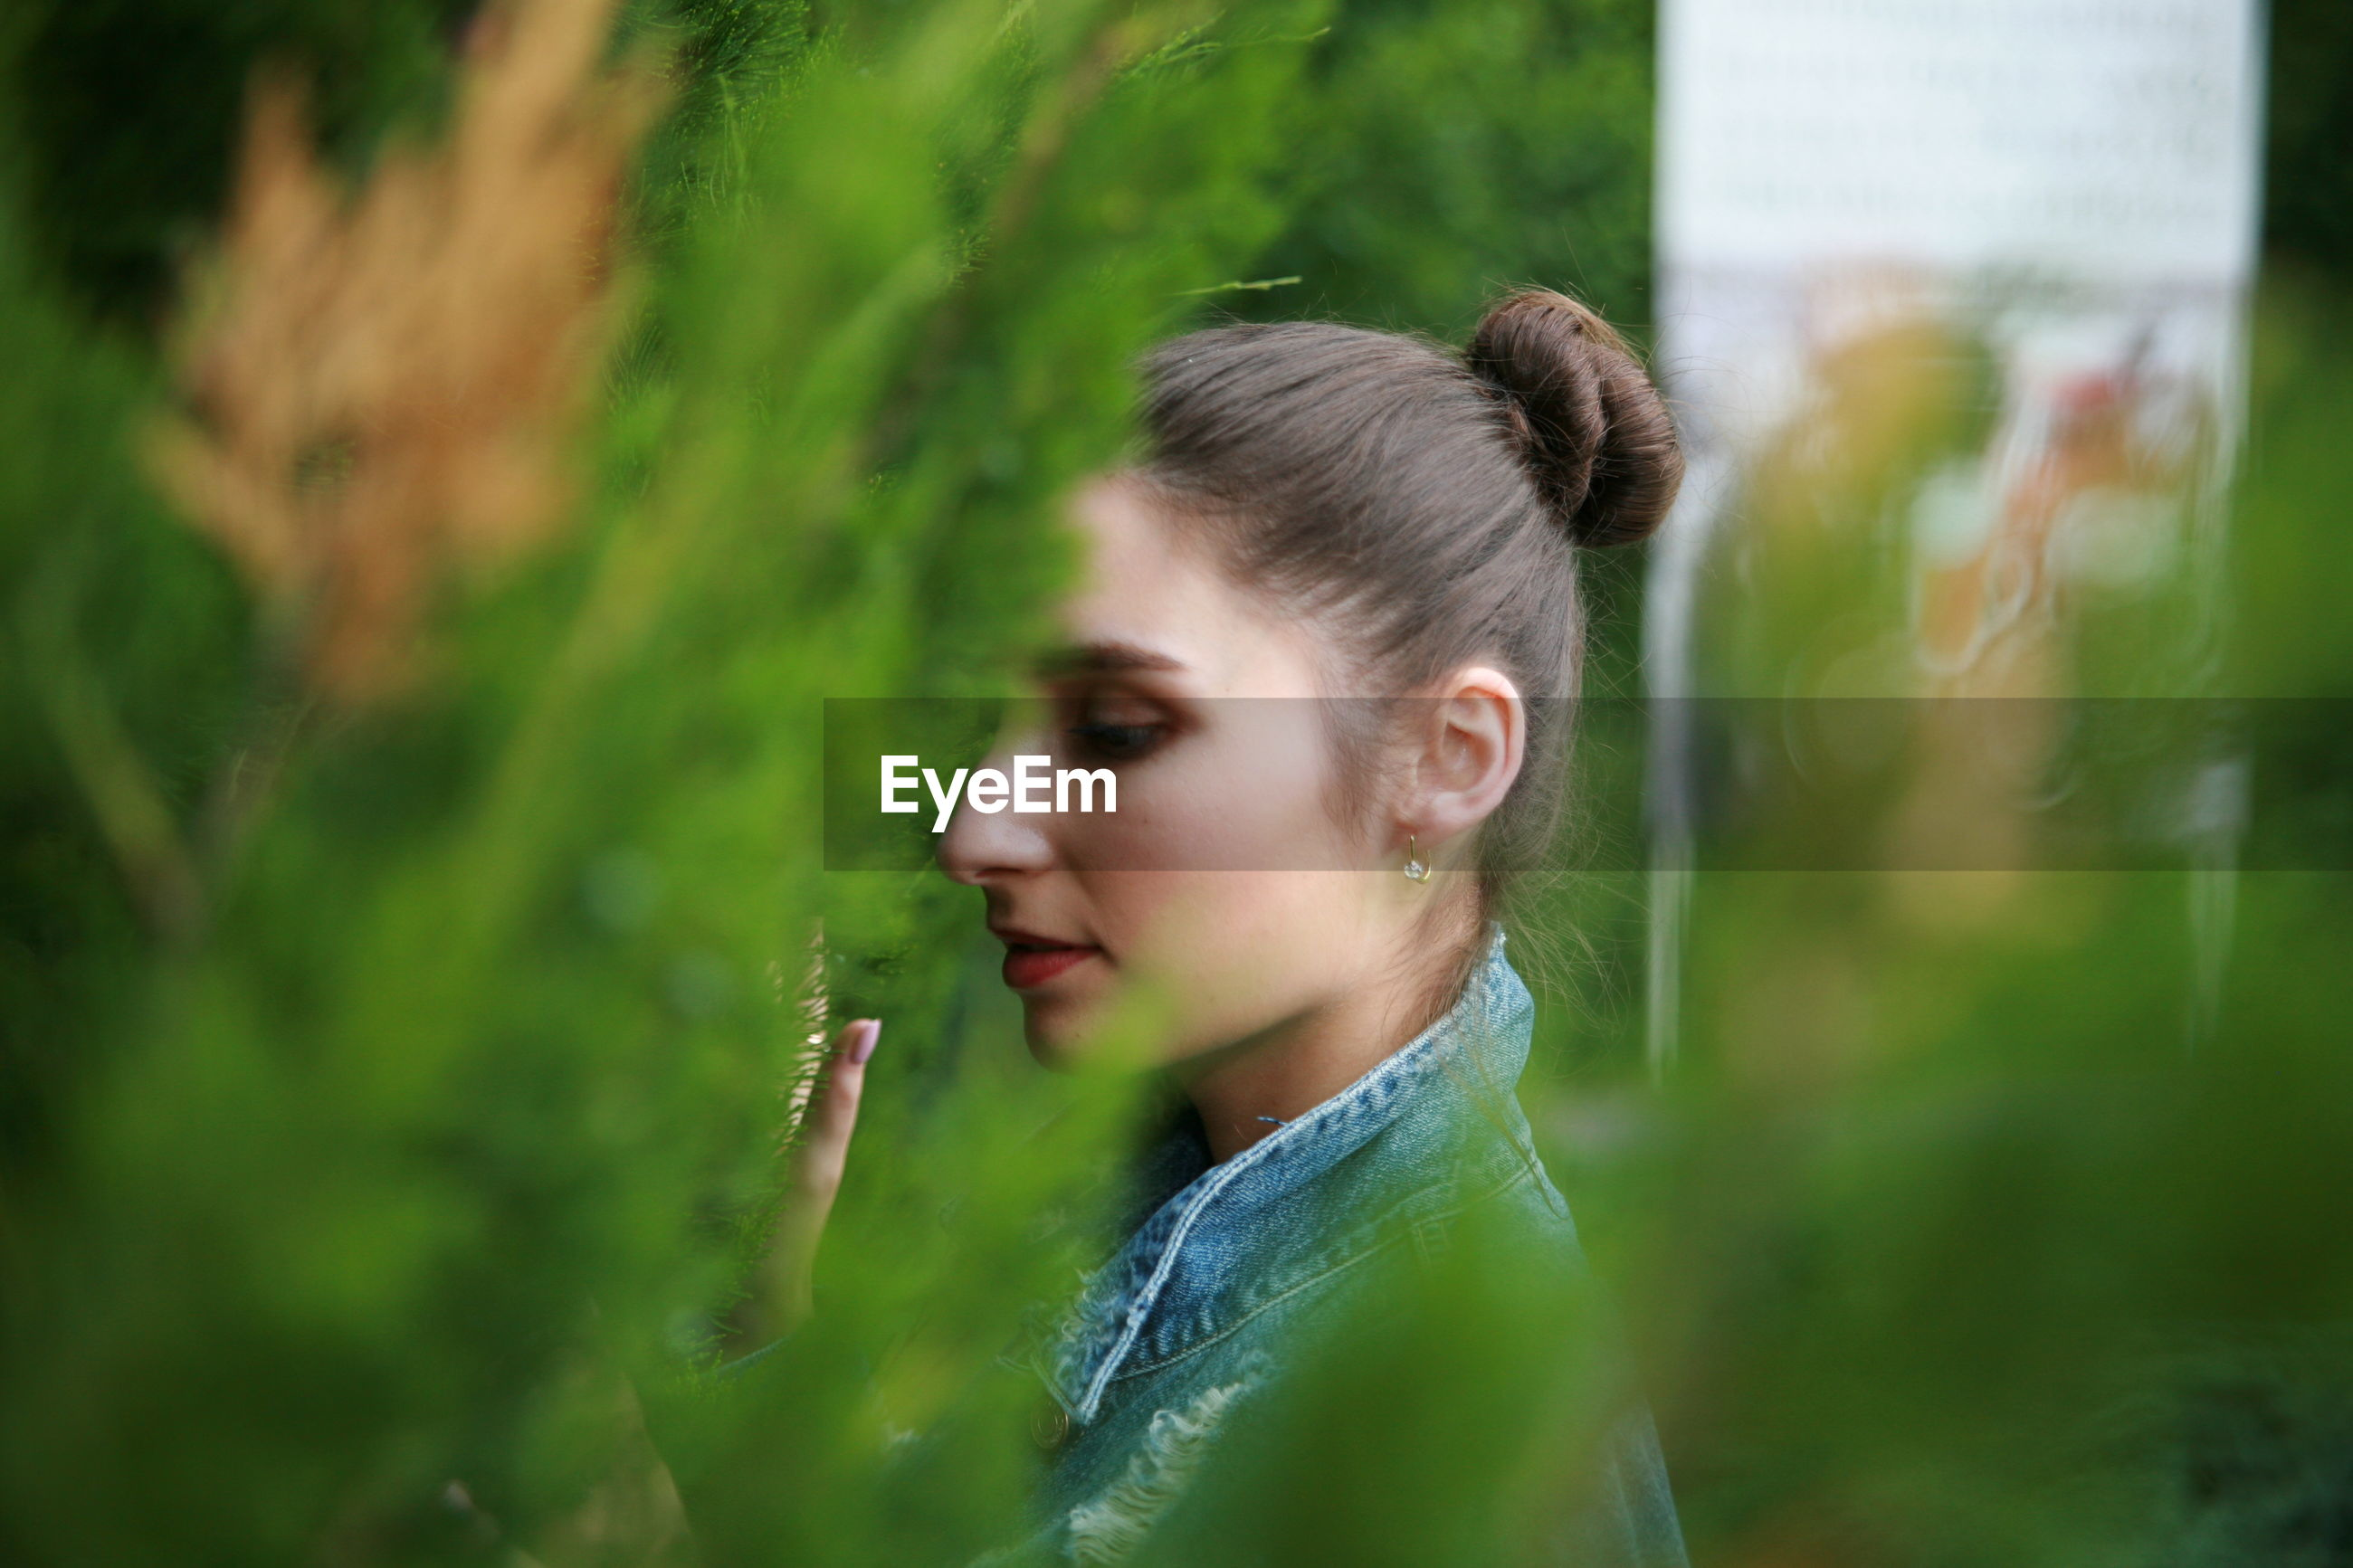 one person, real people, focus on foreground, young adult, day, plant, outdoors, young women, lifestyles, close-up, nature, freshness